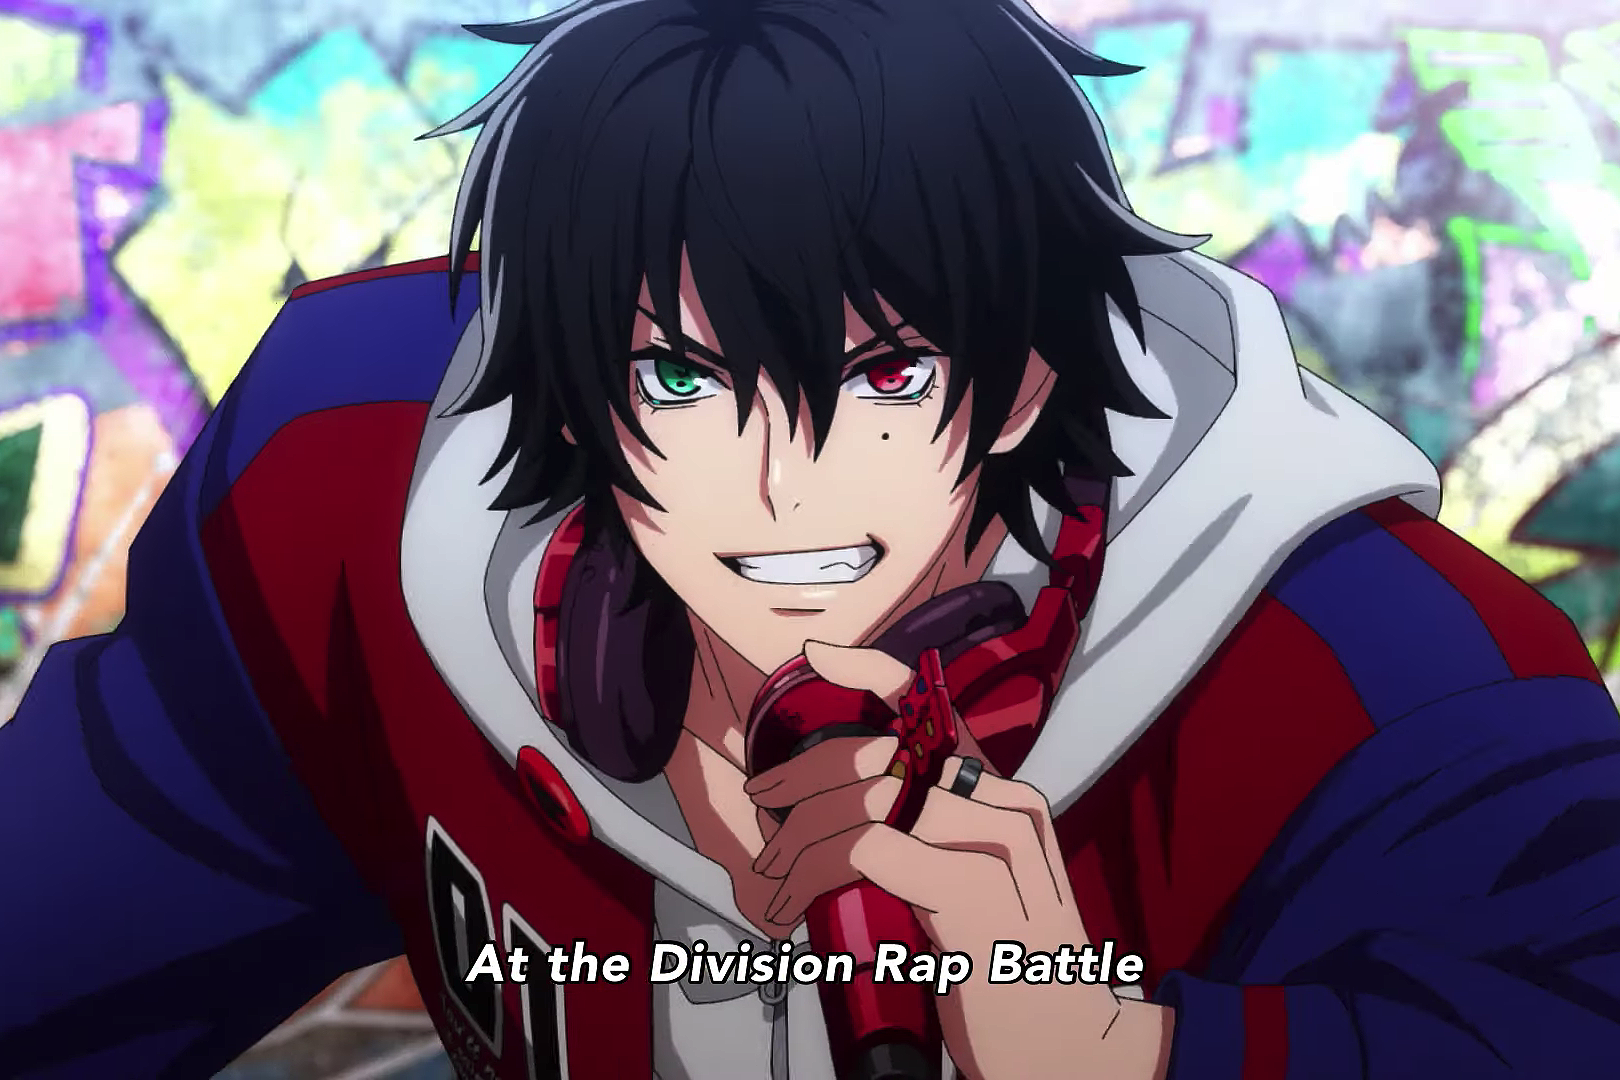 Our Favorite Anime Premieres of Fall 2020 So Far - Hypnosis Mic: Division Rap Battle – Rhyme Anima